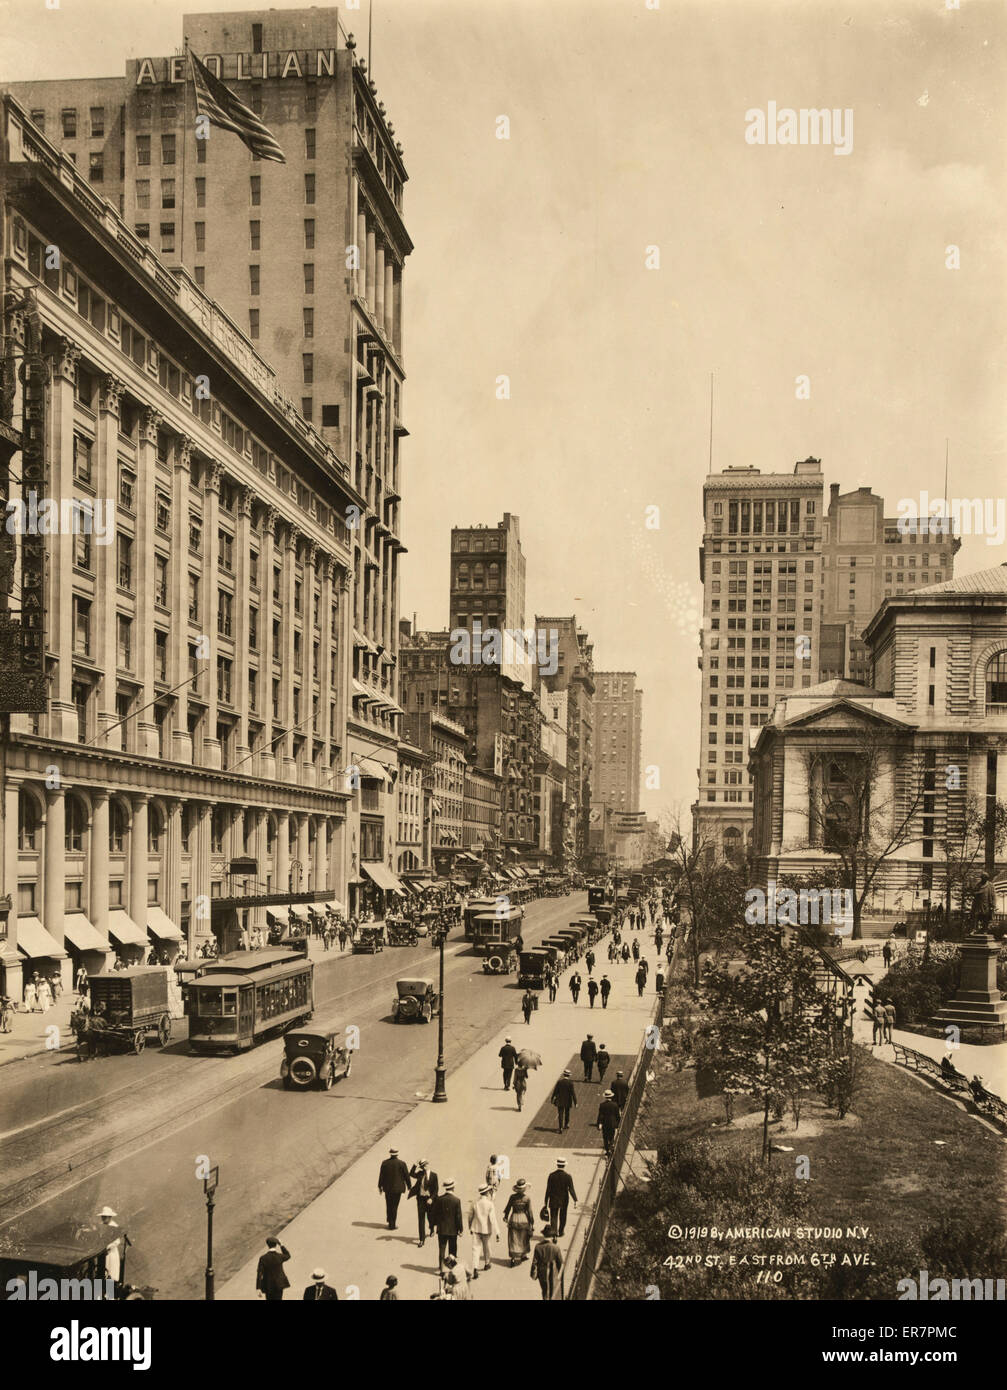 42nd St. east from 6th Ave. Date c1919. - Stock Image